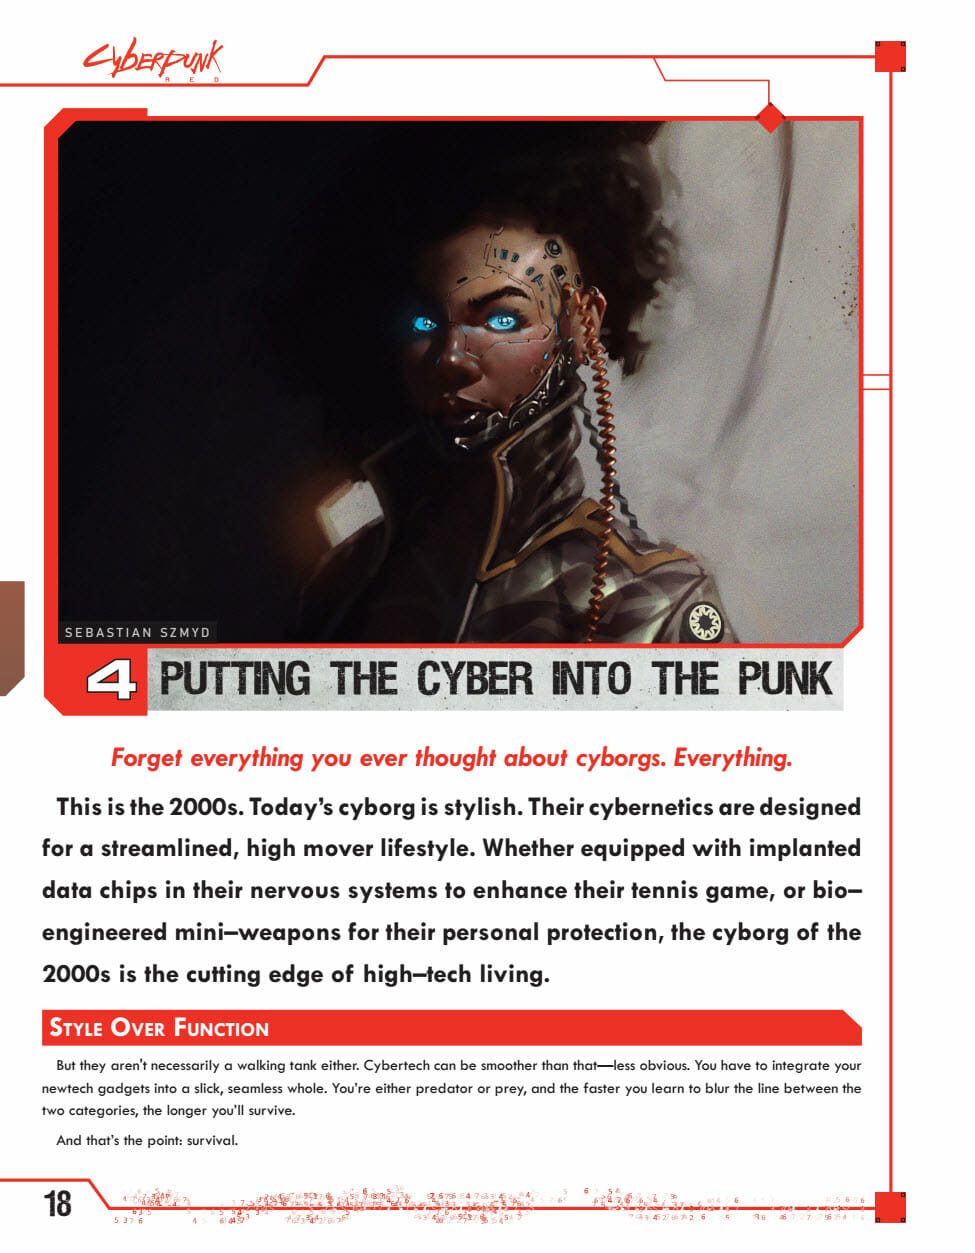 Putting the cyber into punk